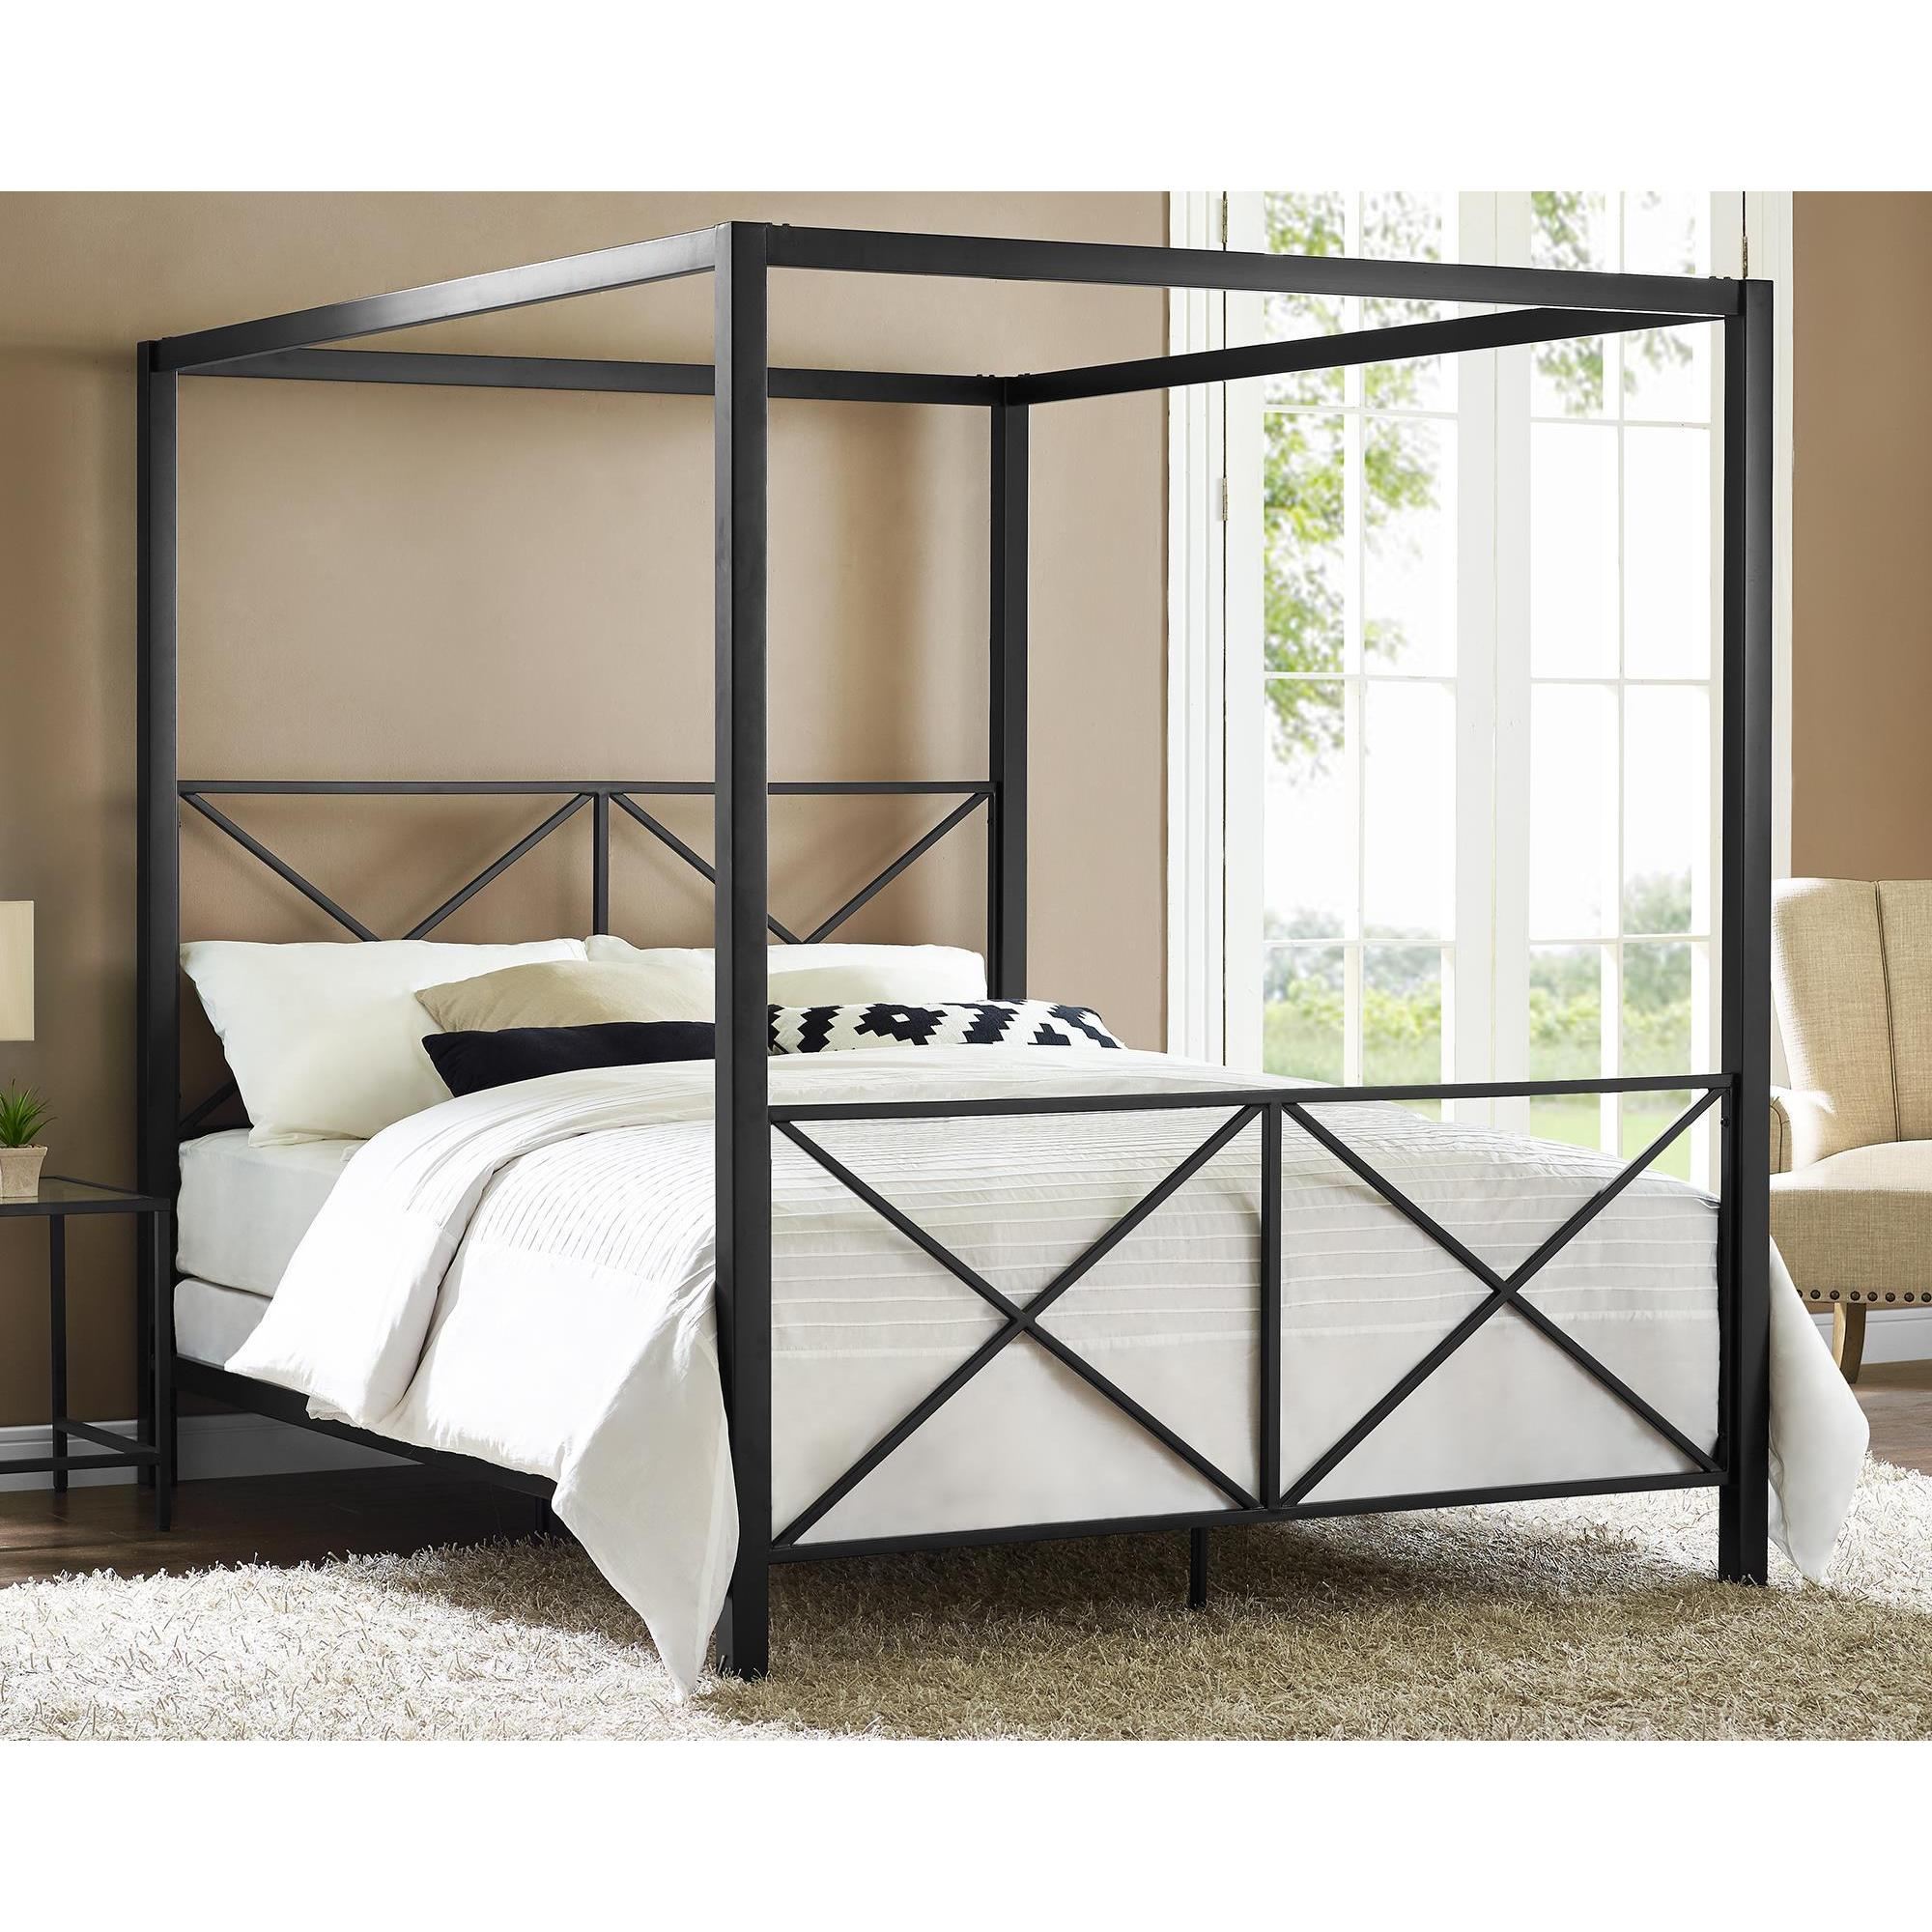 Merveilleux Shop Clay Alder Home Commodore Black Canopy Queen Bed   On Sale   Free  Shipping Today   Overstock.com   20255016